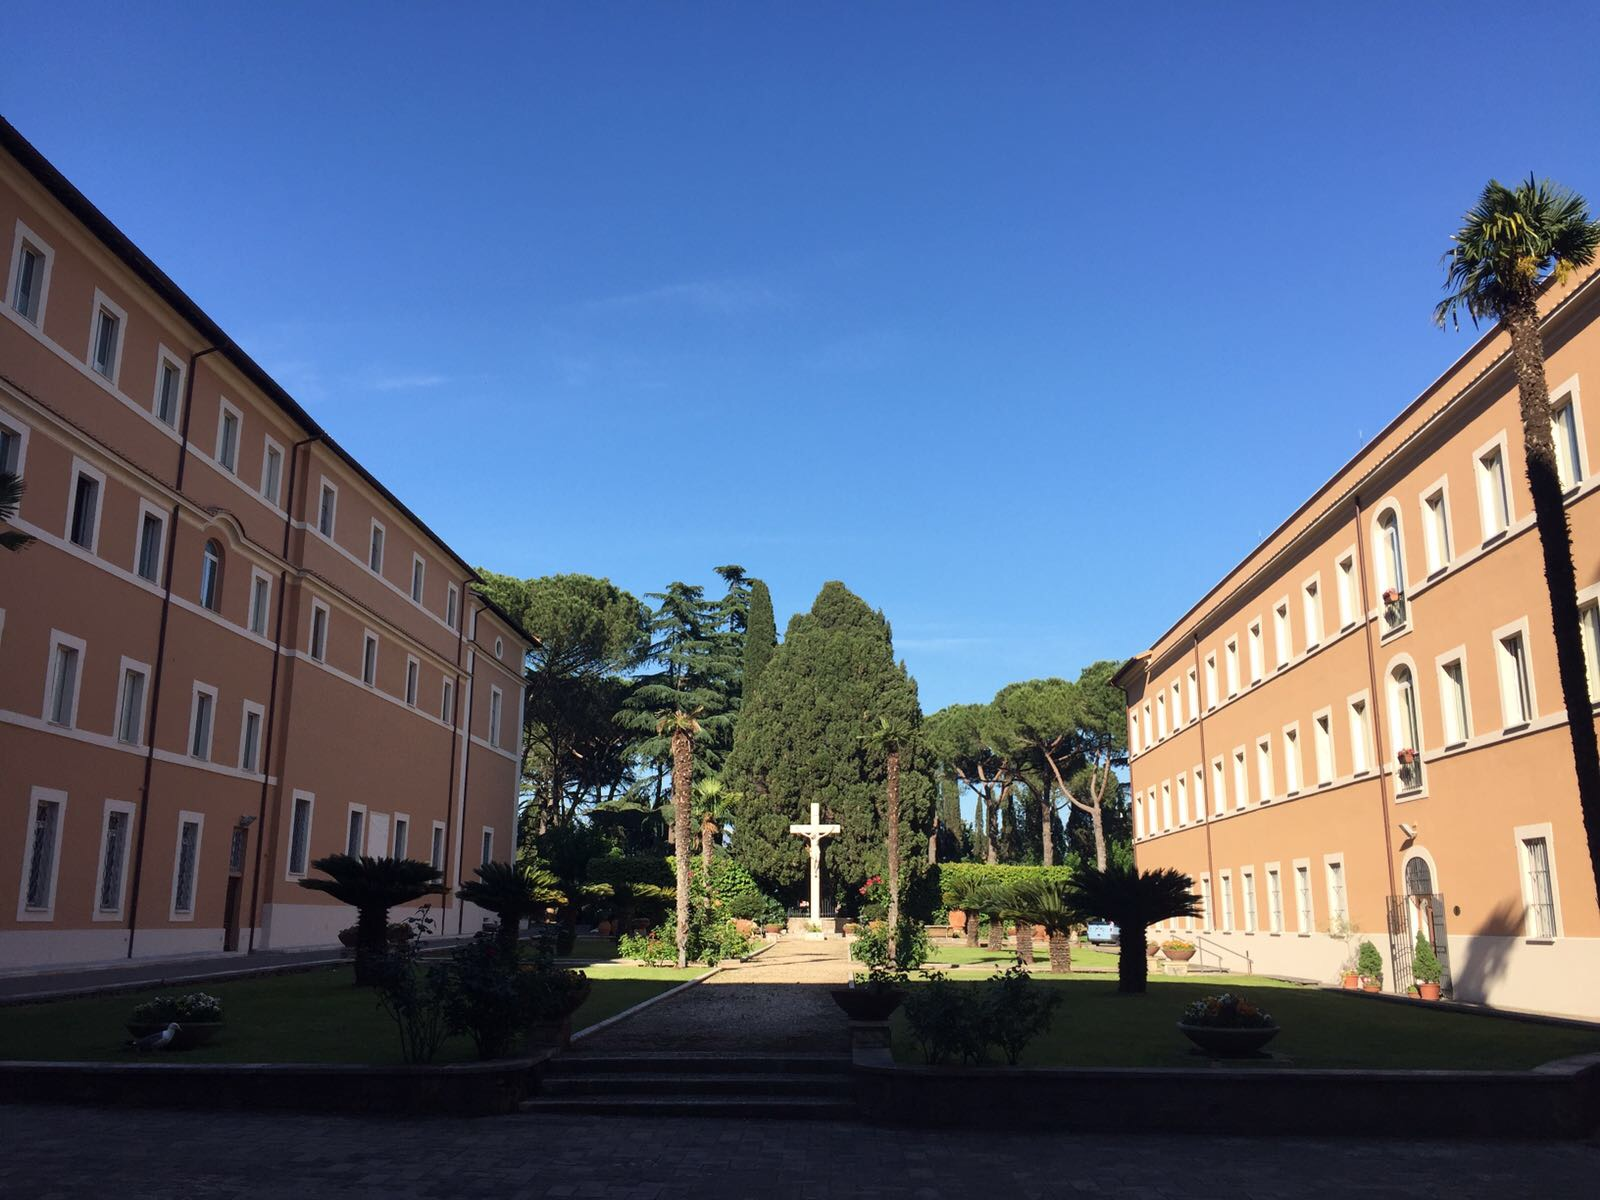 The Passionisti convent, our home in Rome